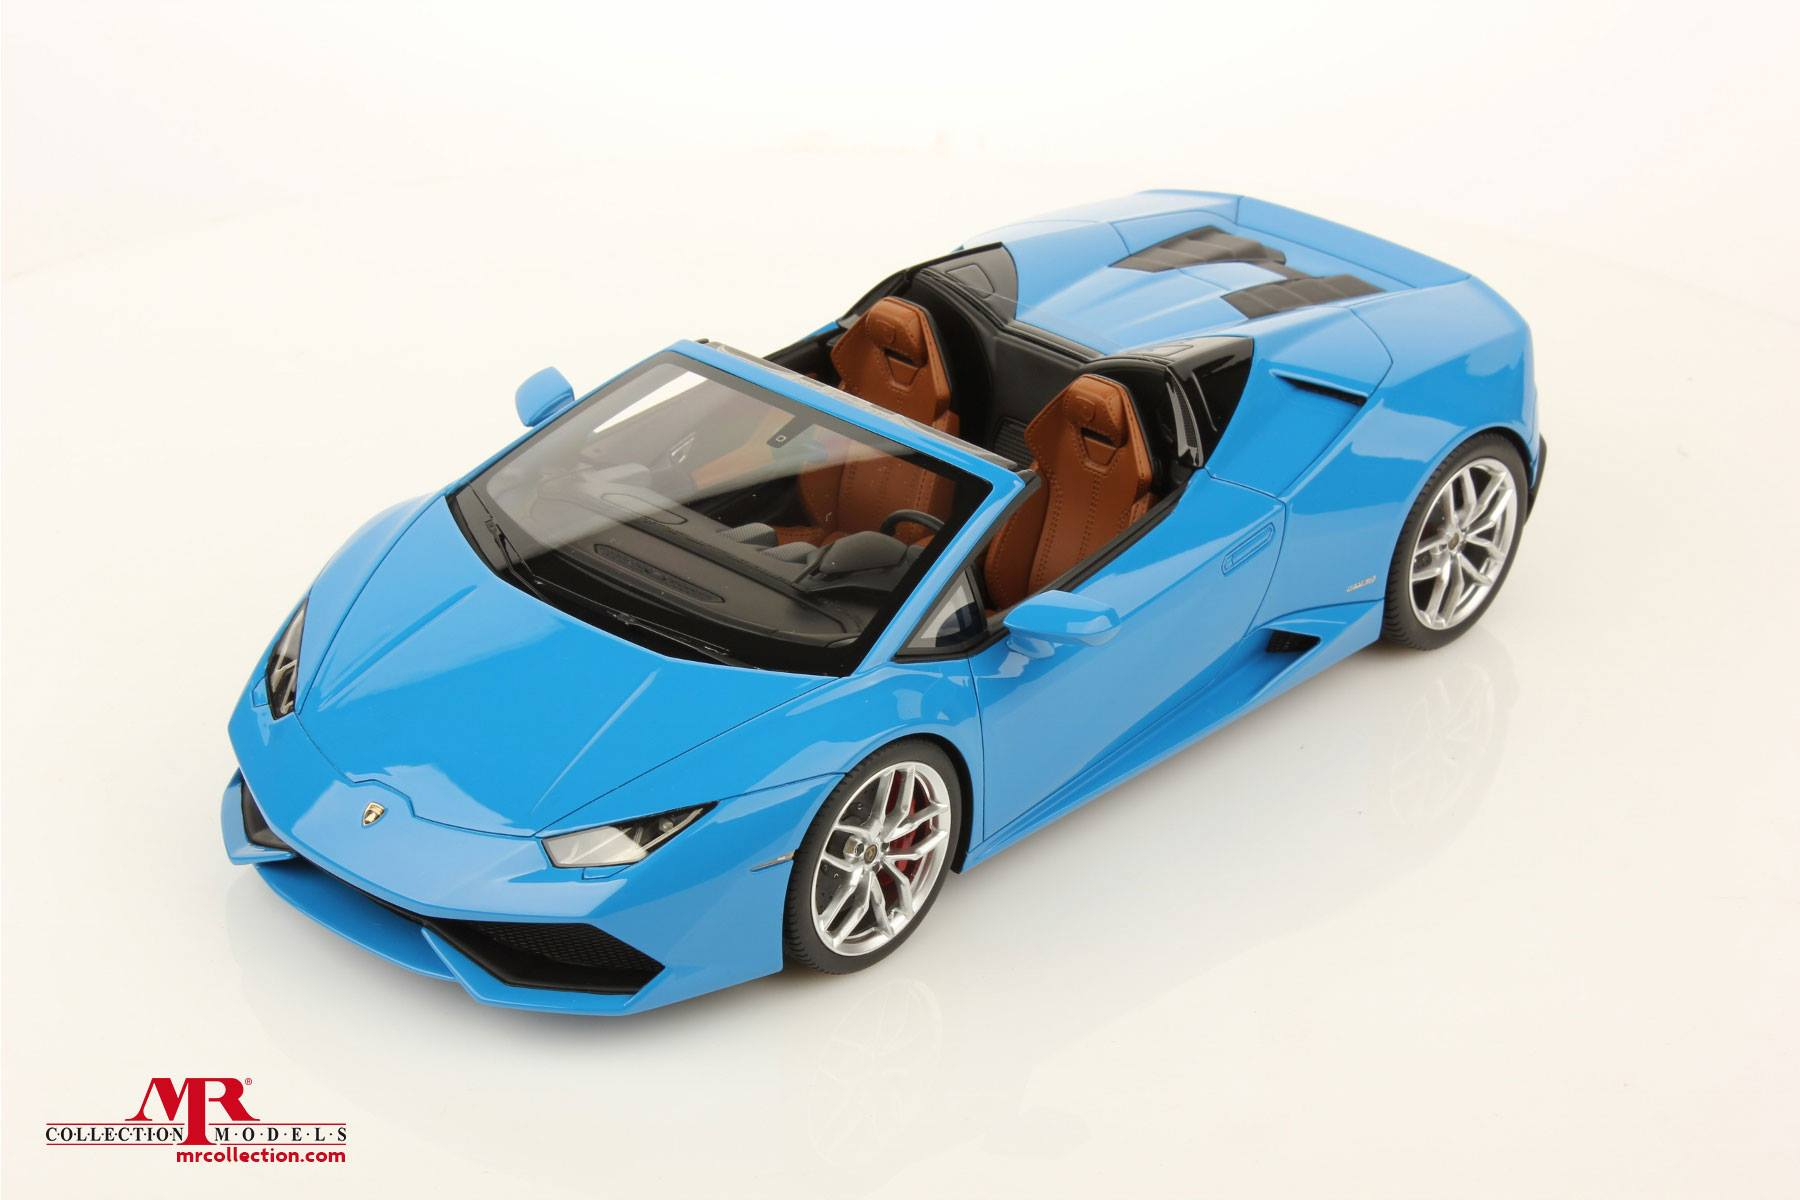 lamborghini huracan spyder 1 18 scale model looks just like the frankfurt showstopper. Black Bedroom Furniture Sets. Home Design Ideas